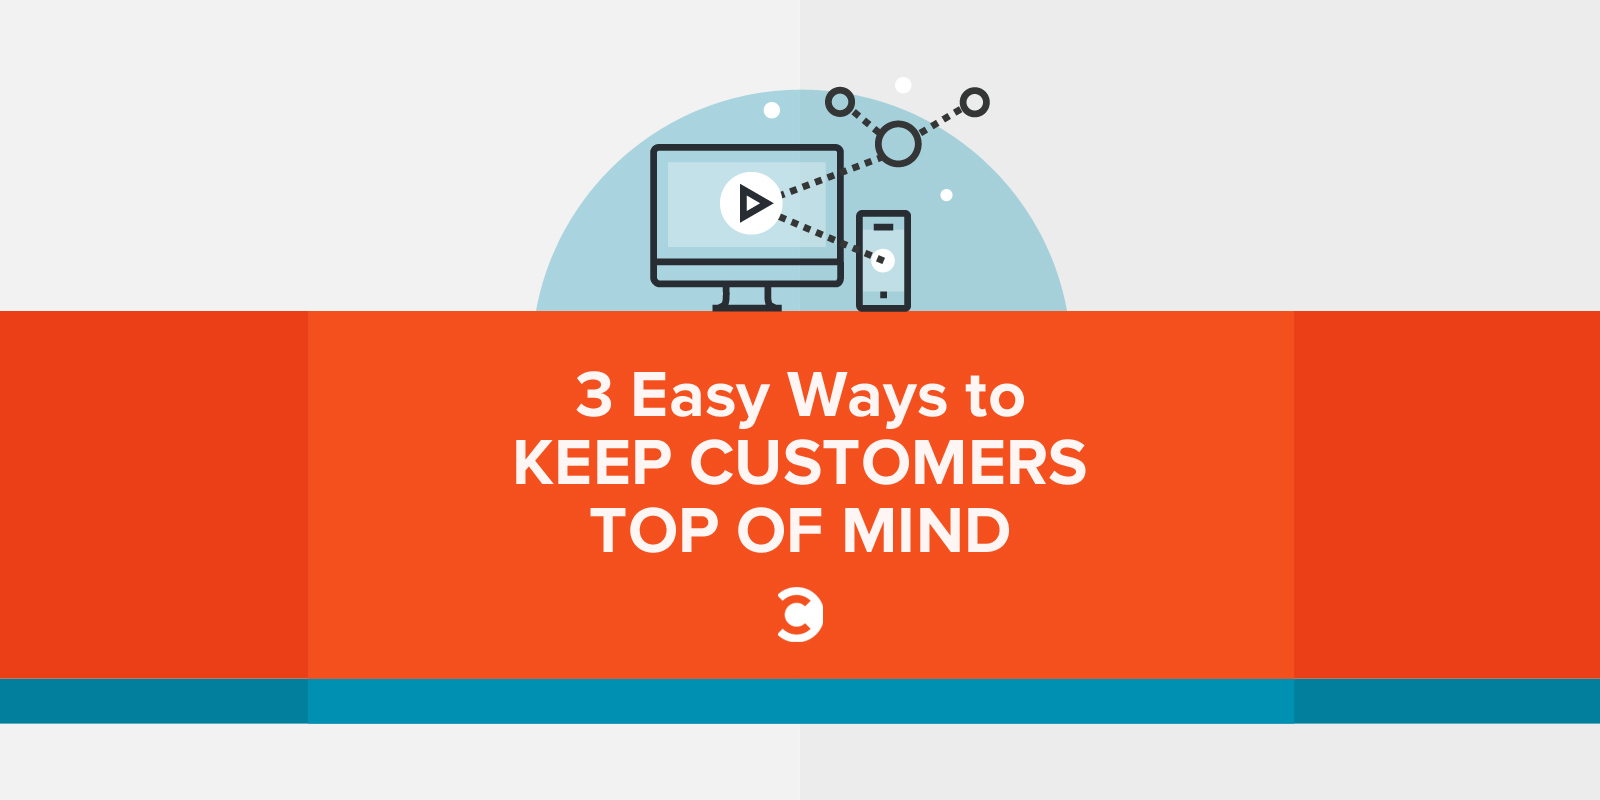 3 Easy Ways to Keep Customers Top of Mind